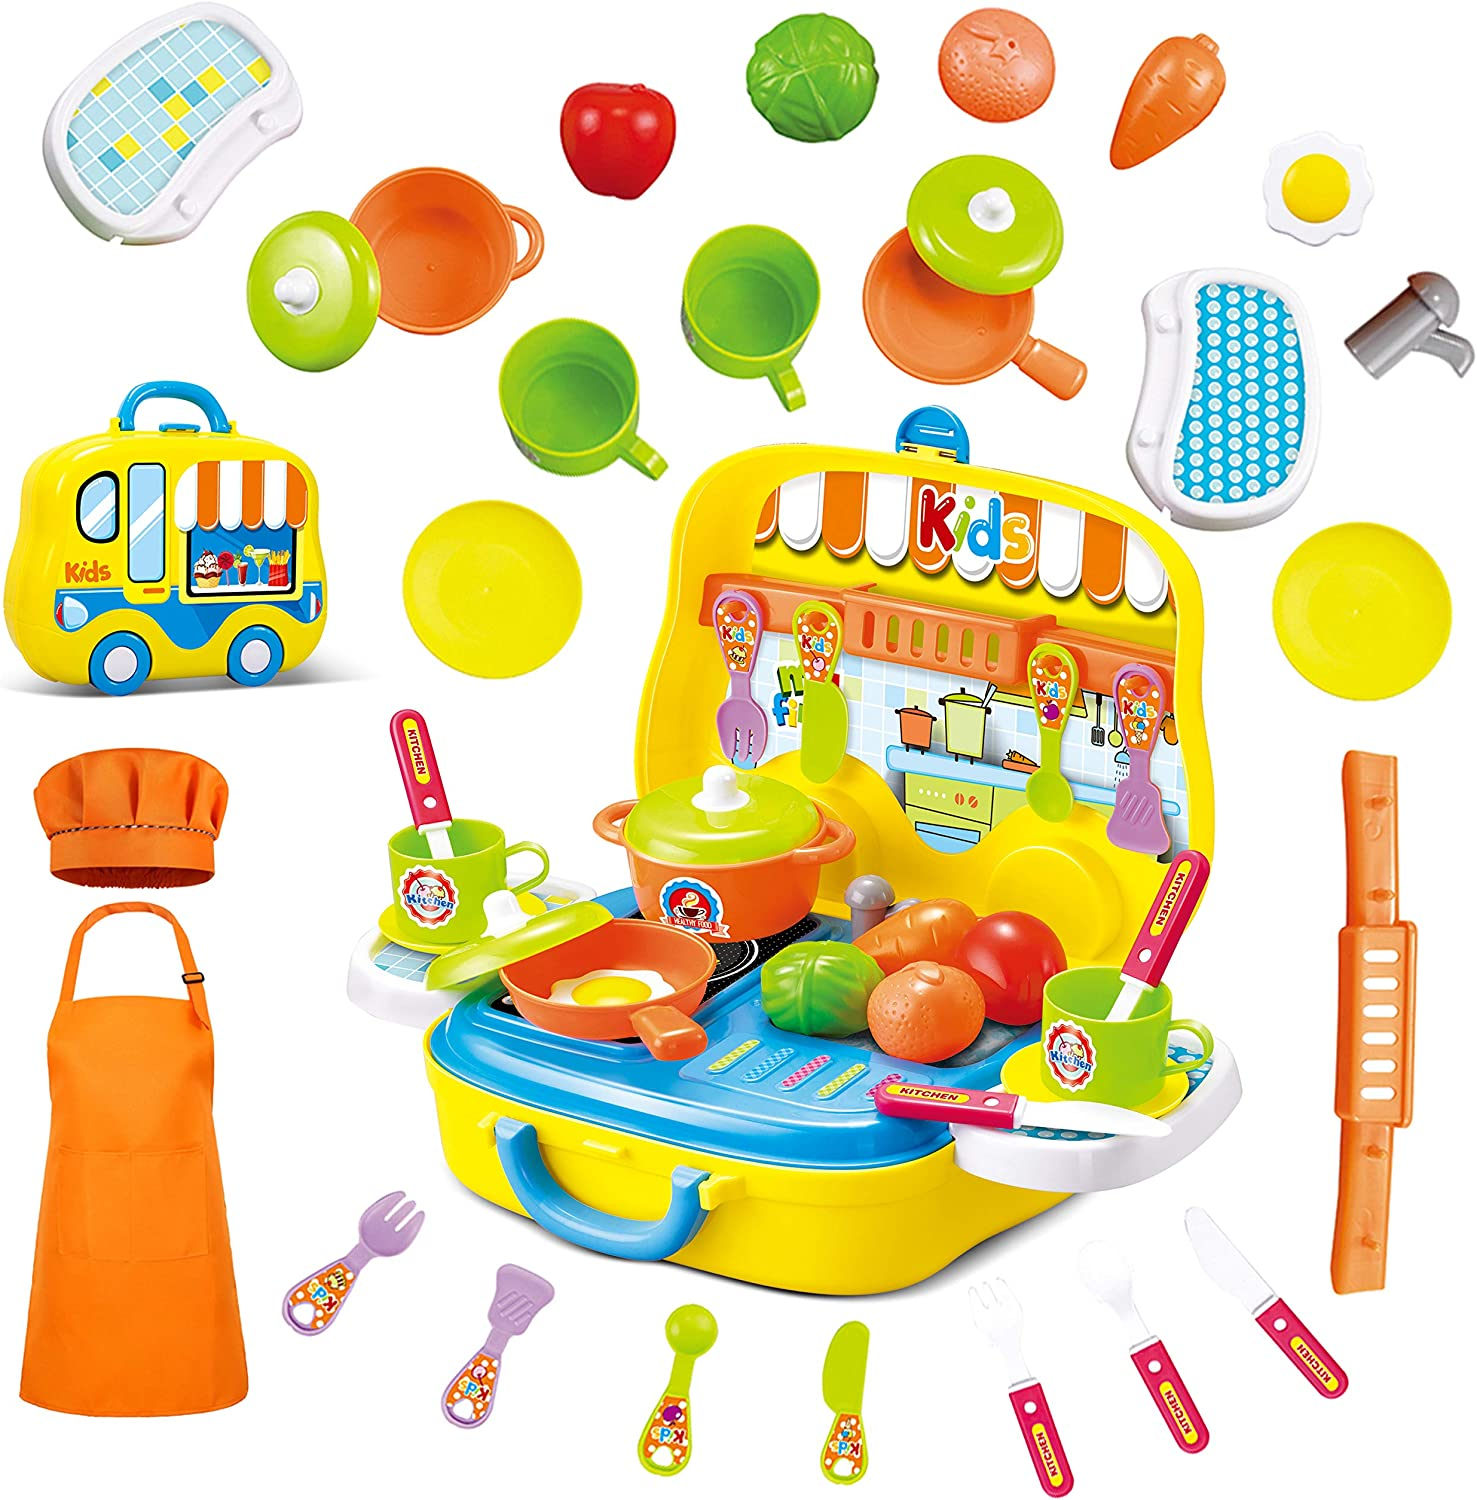 50% Coupon – 25 Pieces Kids Kitchen Playsets